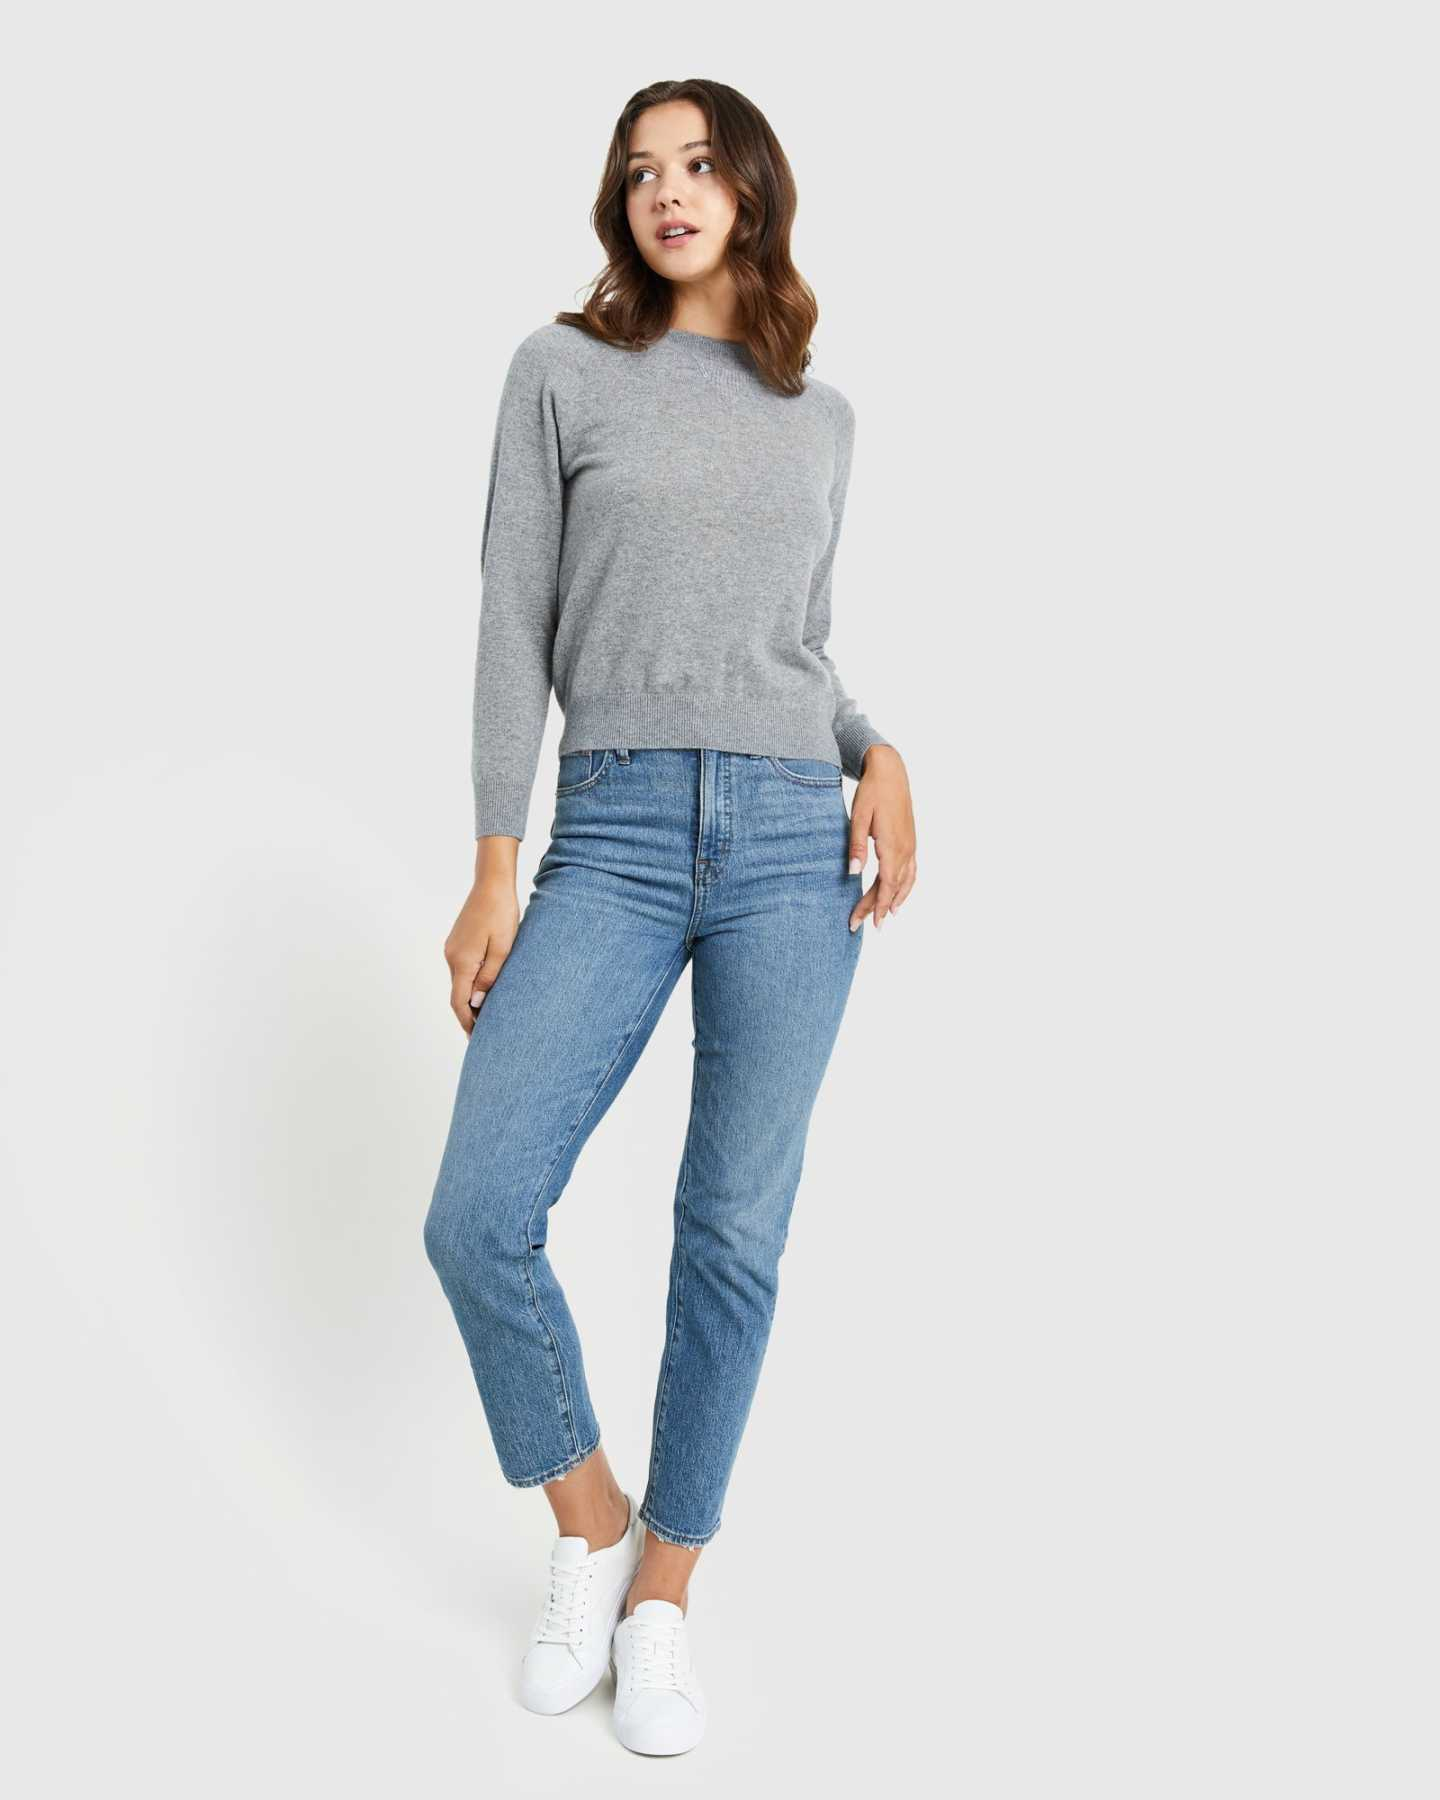 grey cashmere sweatshirt for women standing